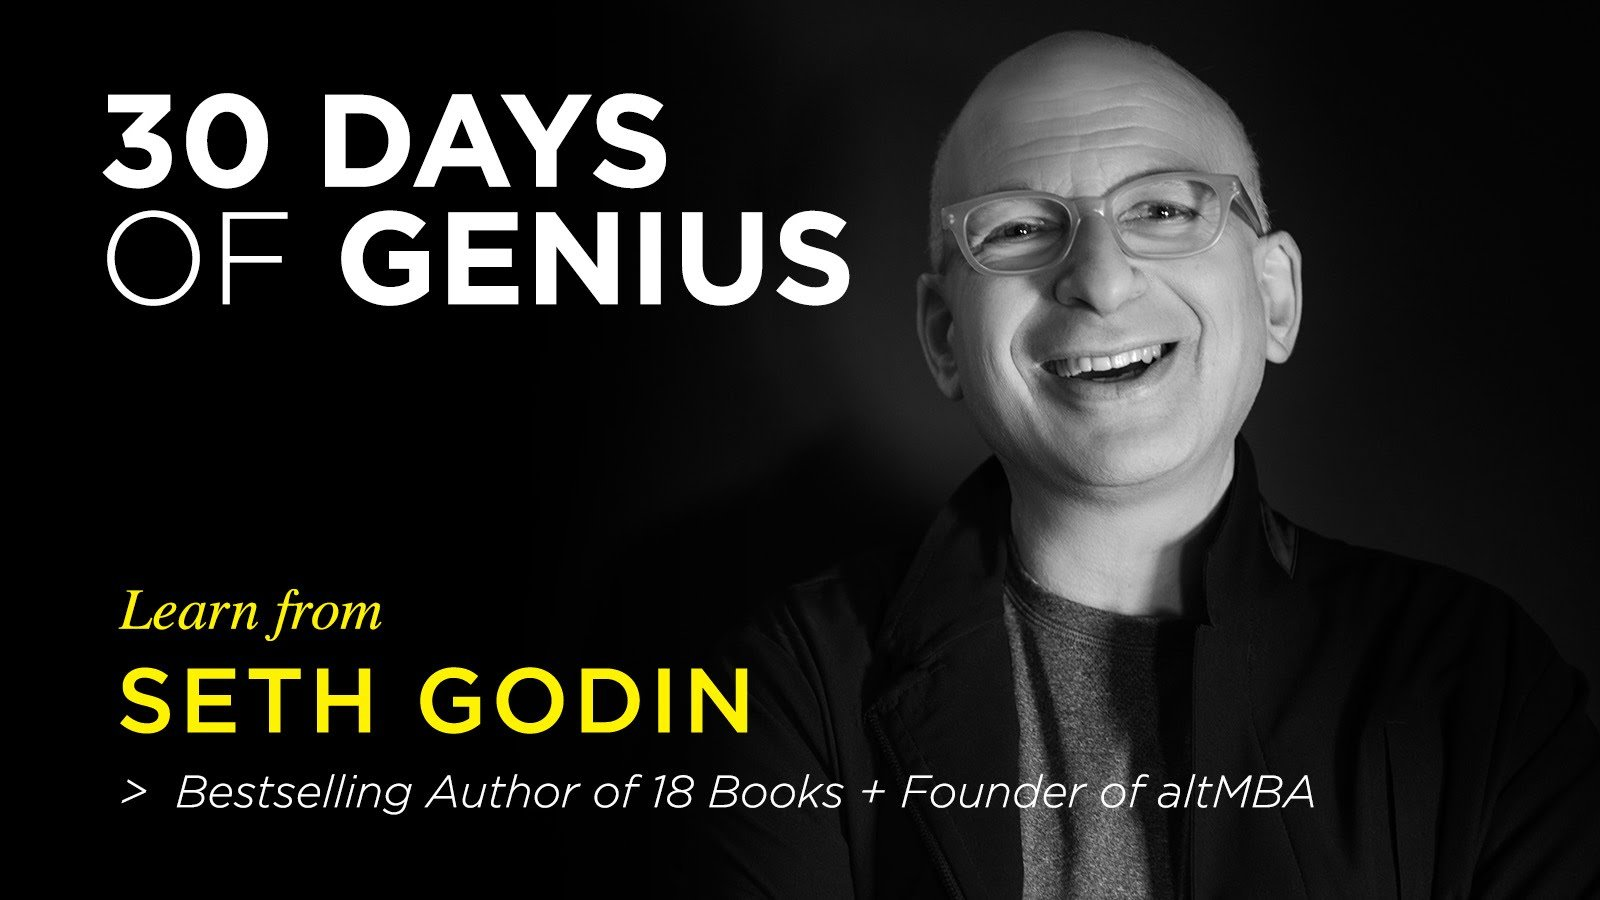 Chase Jarvis Interviews Seth Godin On CreativeLive – 30 Days of Genius